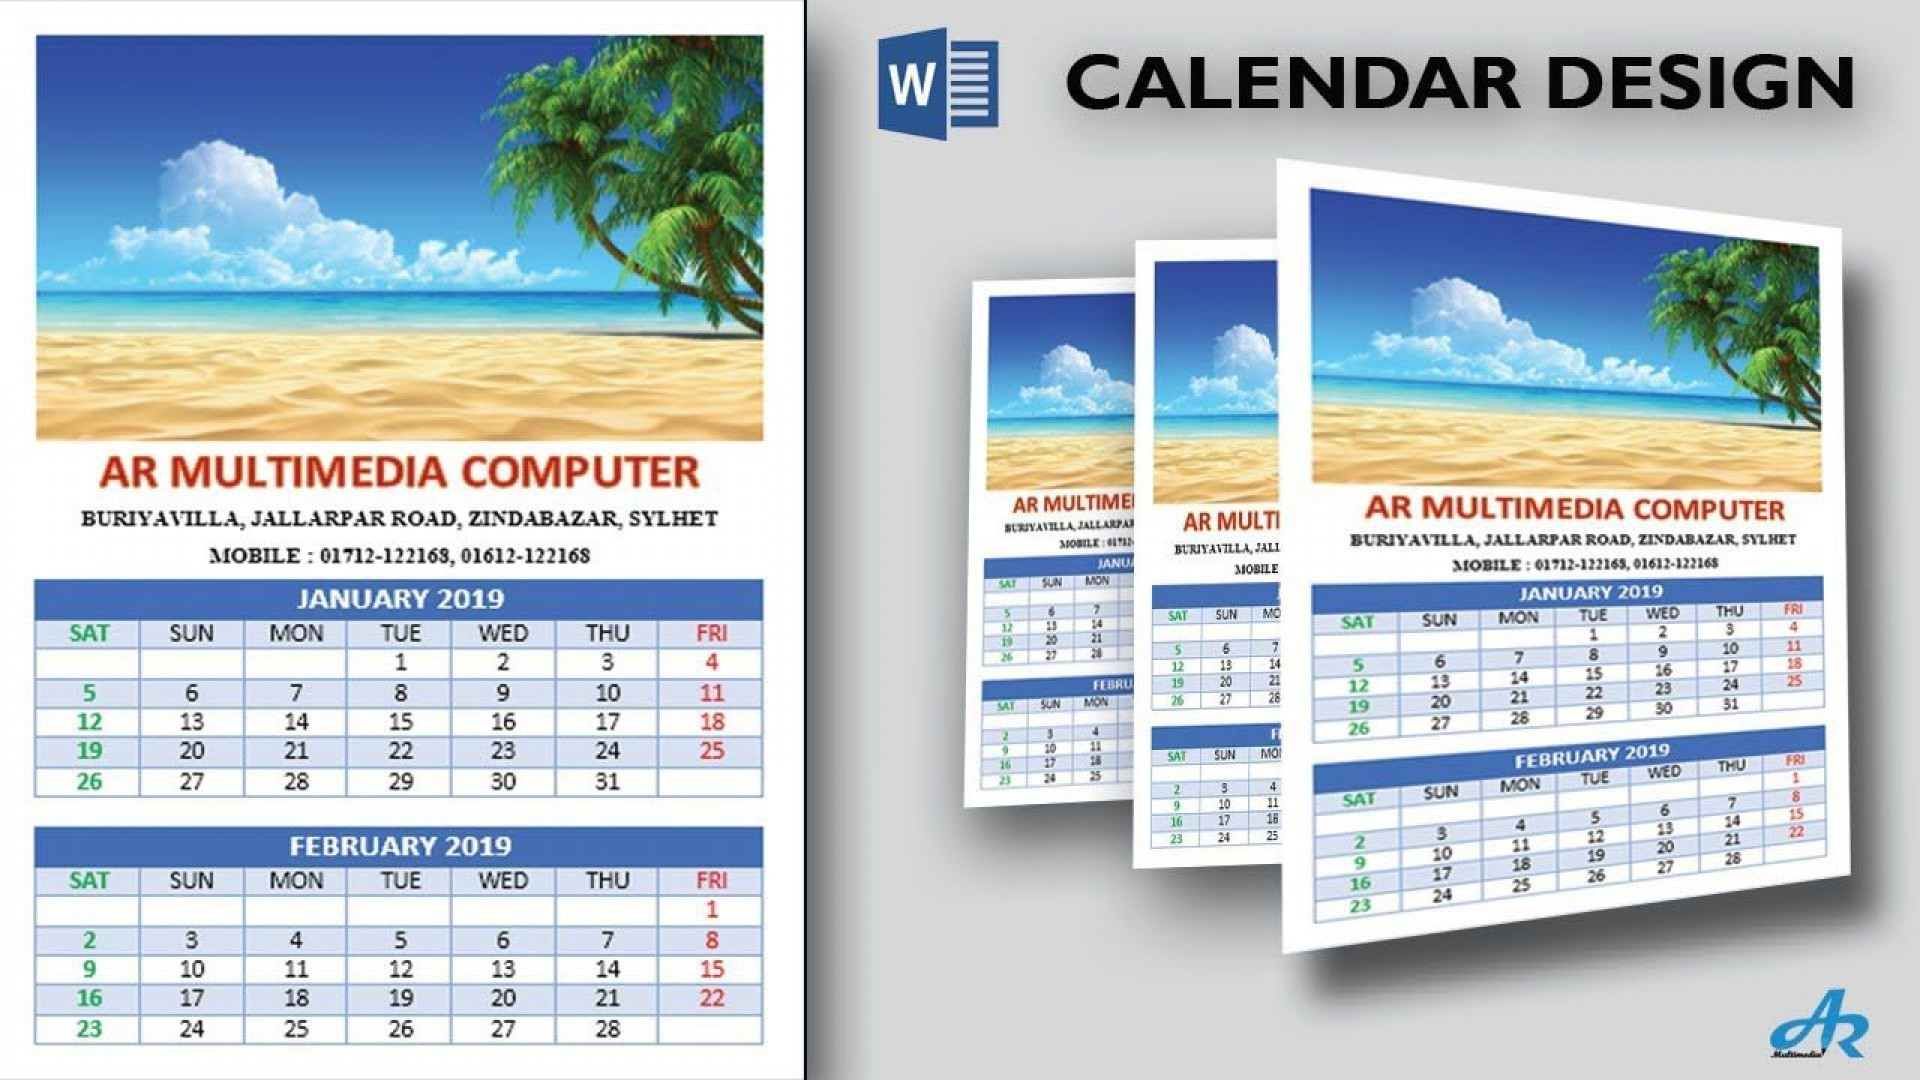 007 Awful Calendar Template For Word 2010 Highest Clarity  2019 Microsoft1920